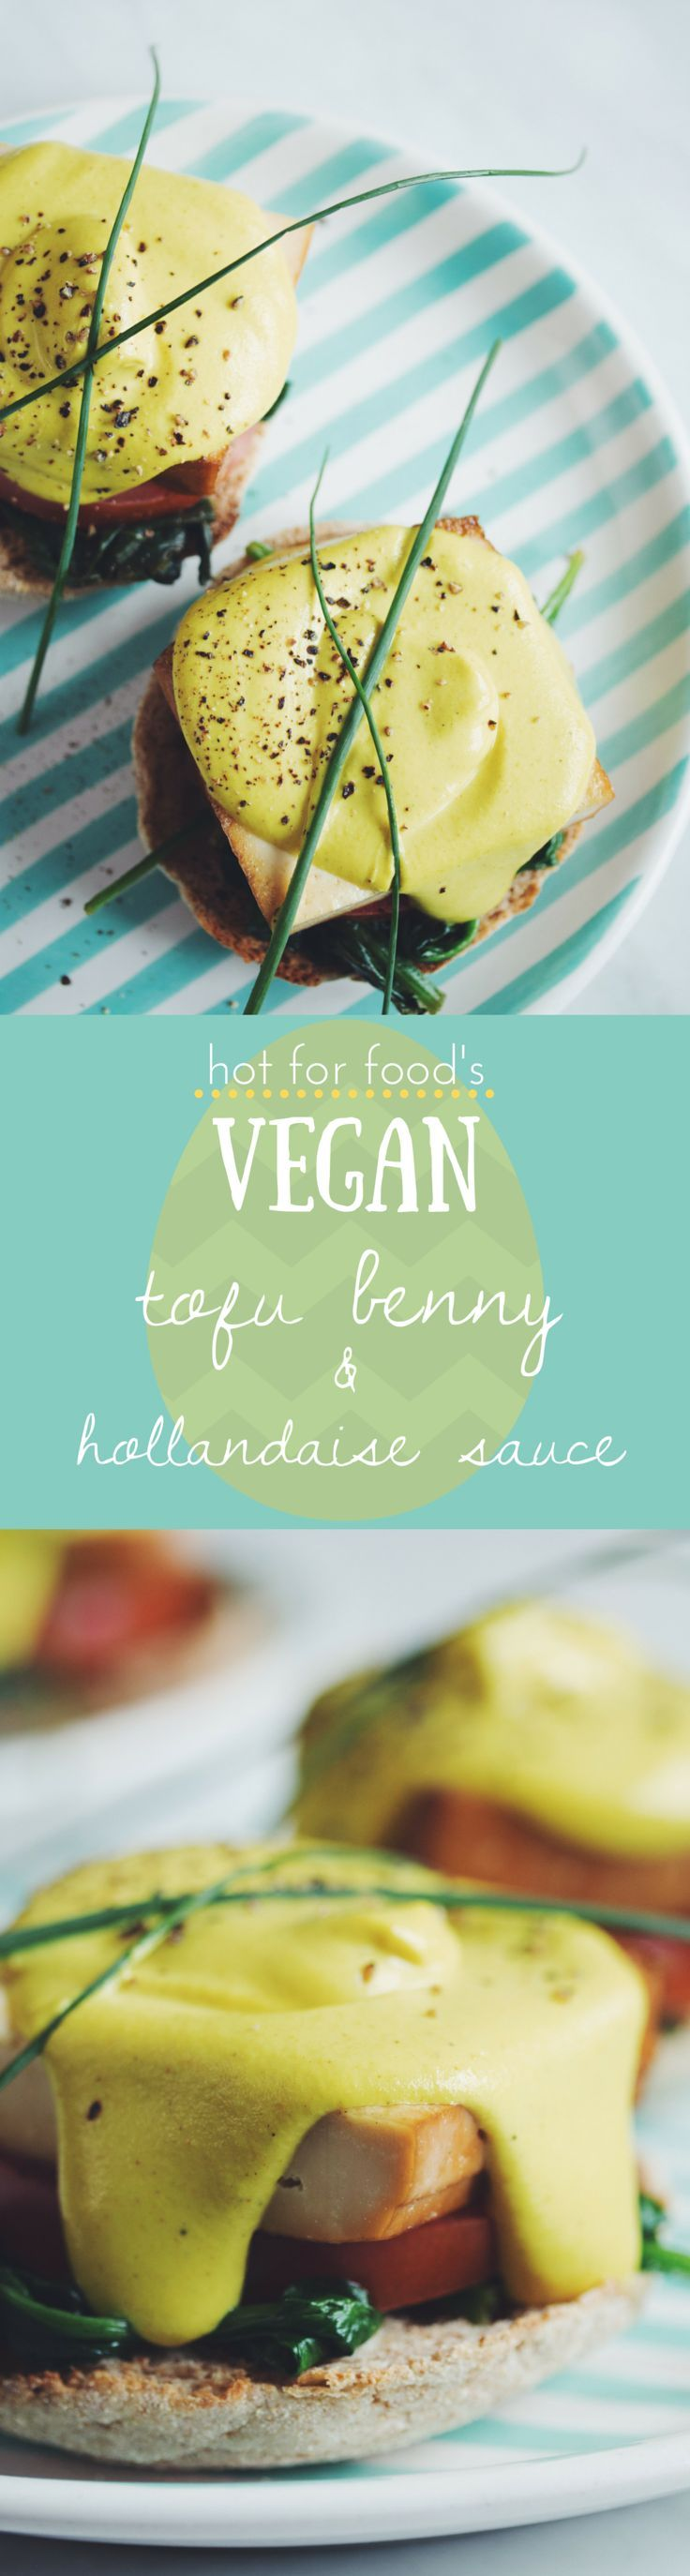 tofu benny & vegan hollandaise | RECIPE on hotforfoodblog.com